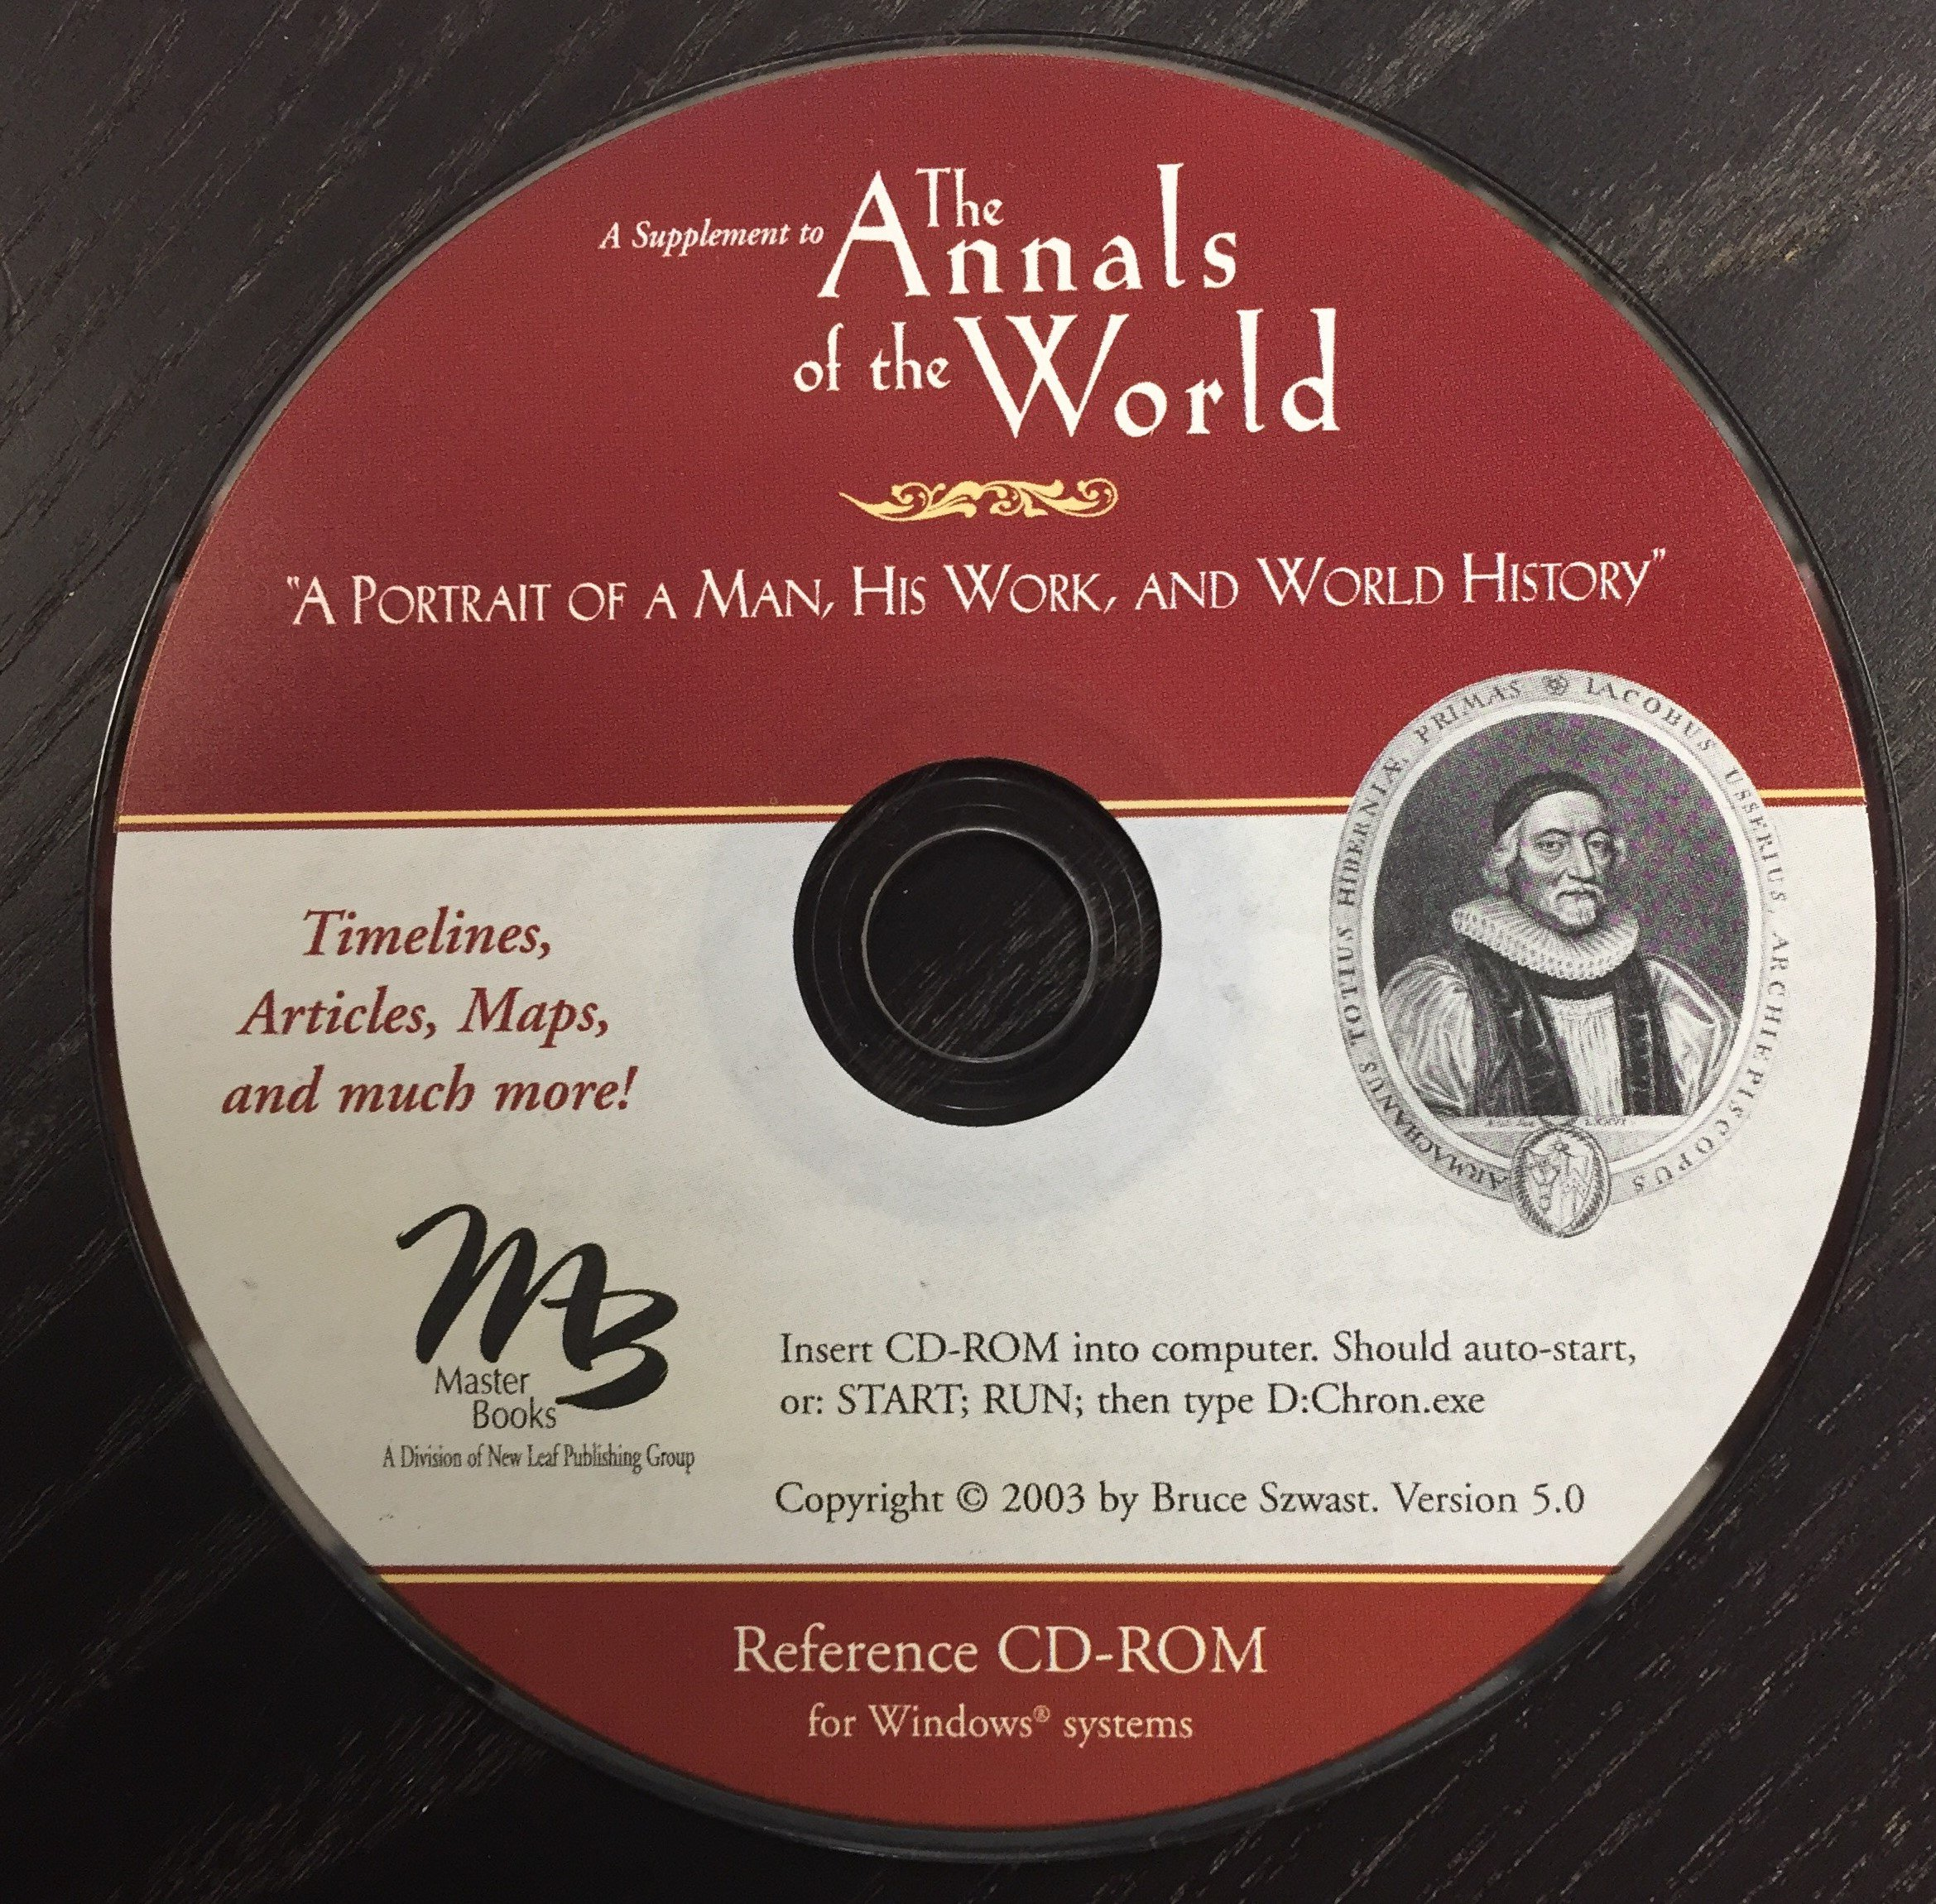 Annals of the World: James Ussher's Classic Survey of Ancient World History with CD-ROM by New Leaf Publishing Group